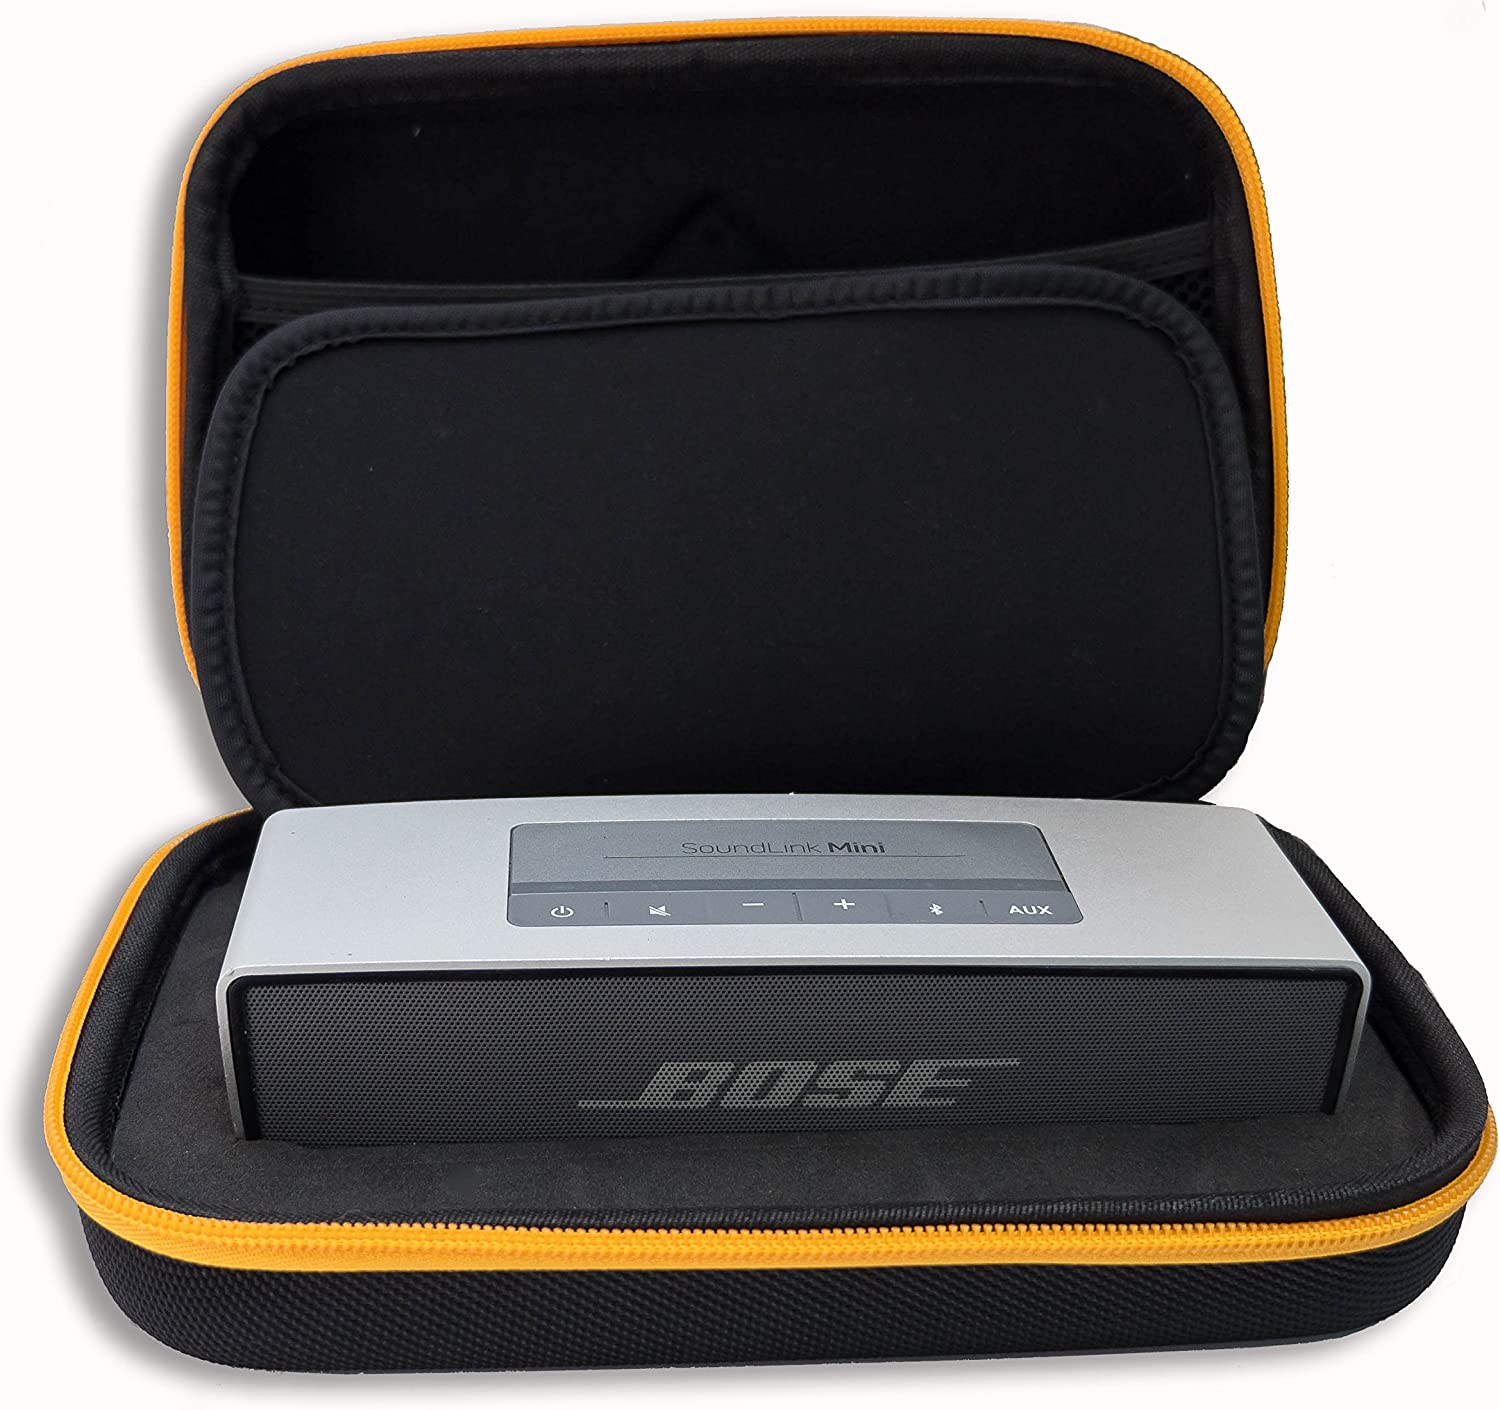 Rugged Geek Multi Purpose Hard Shell EVA Carrying Case for Portable Jump Starters and other Tools including the RG1000